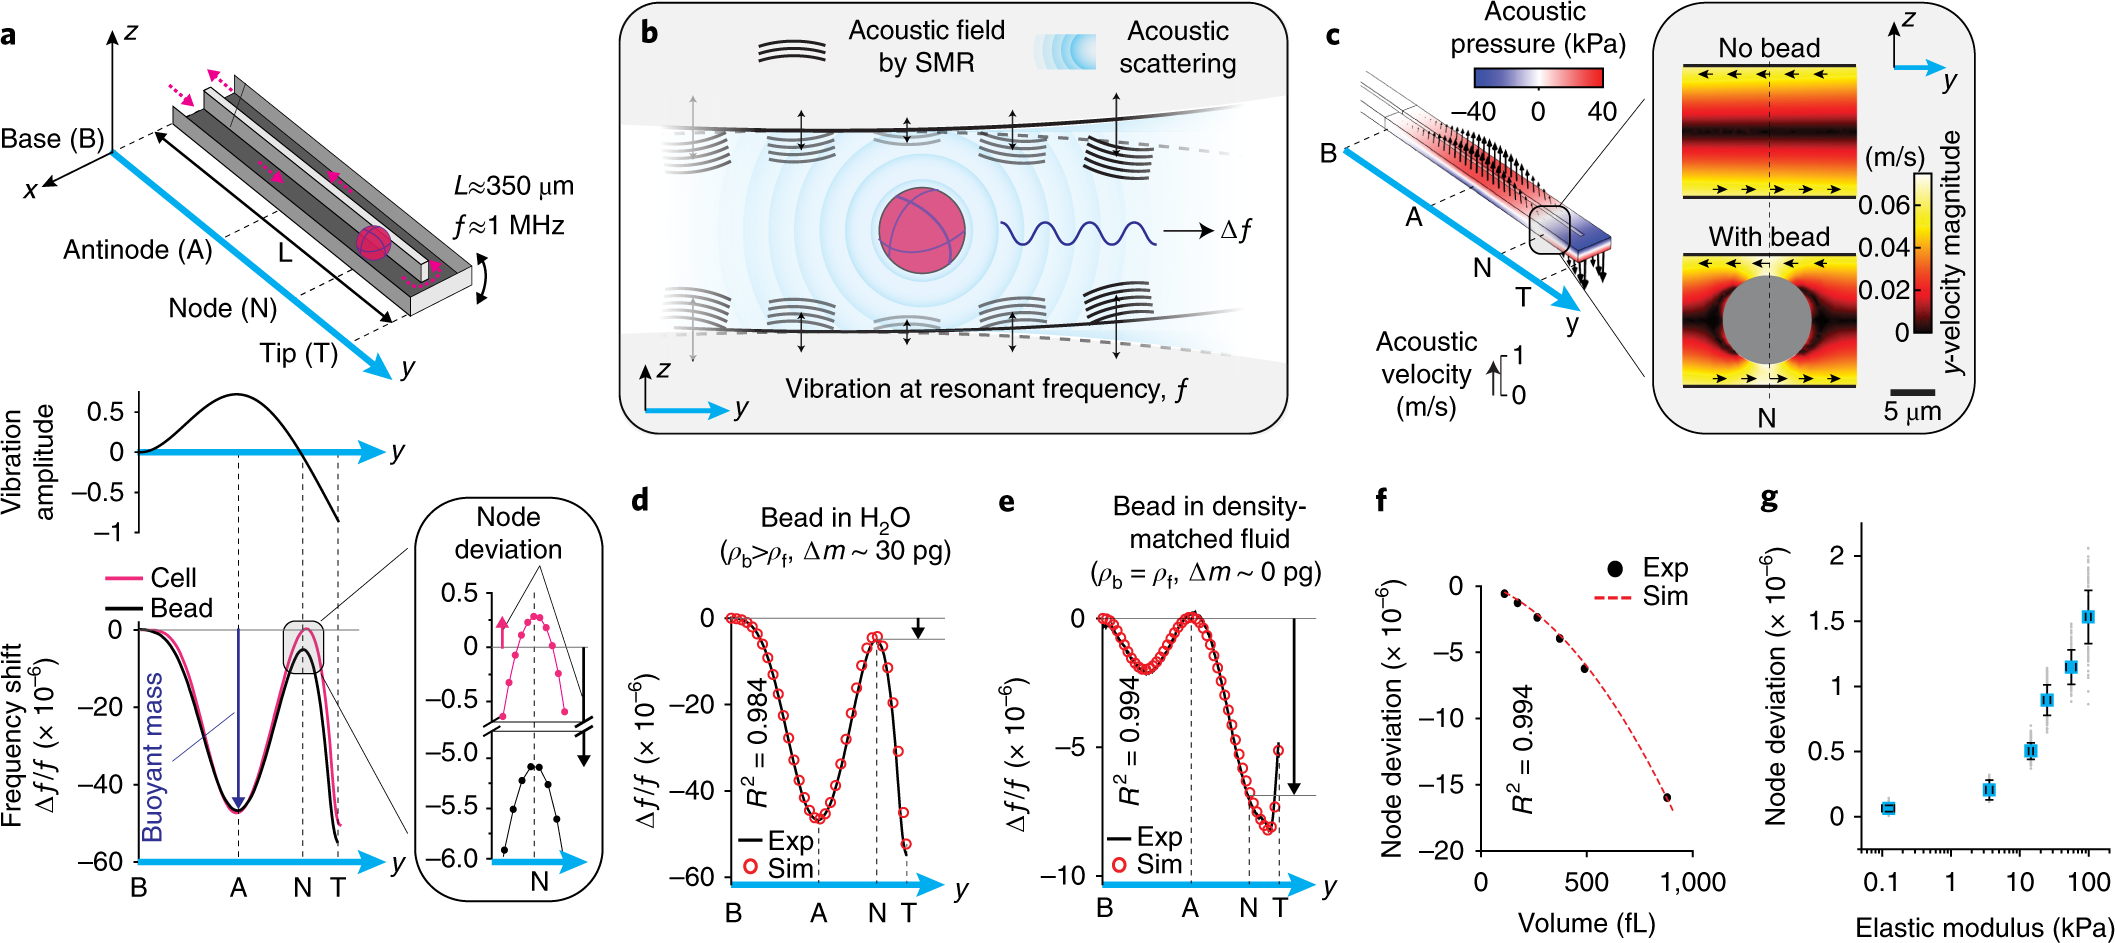 Acoustic scattering causes a resonant frequency shift at the node of an SMR.